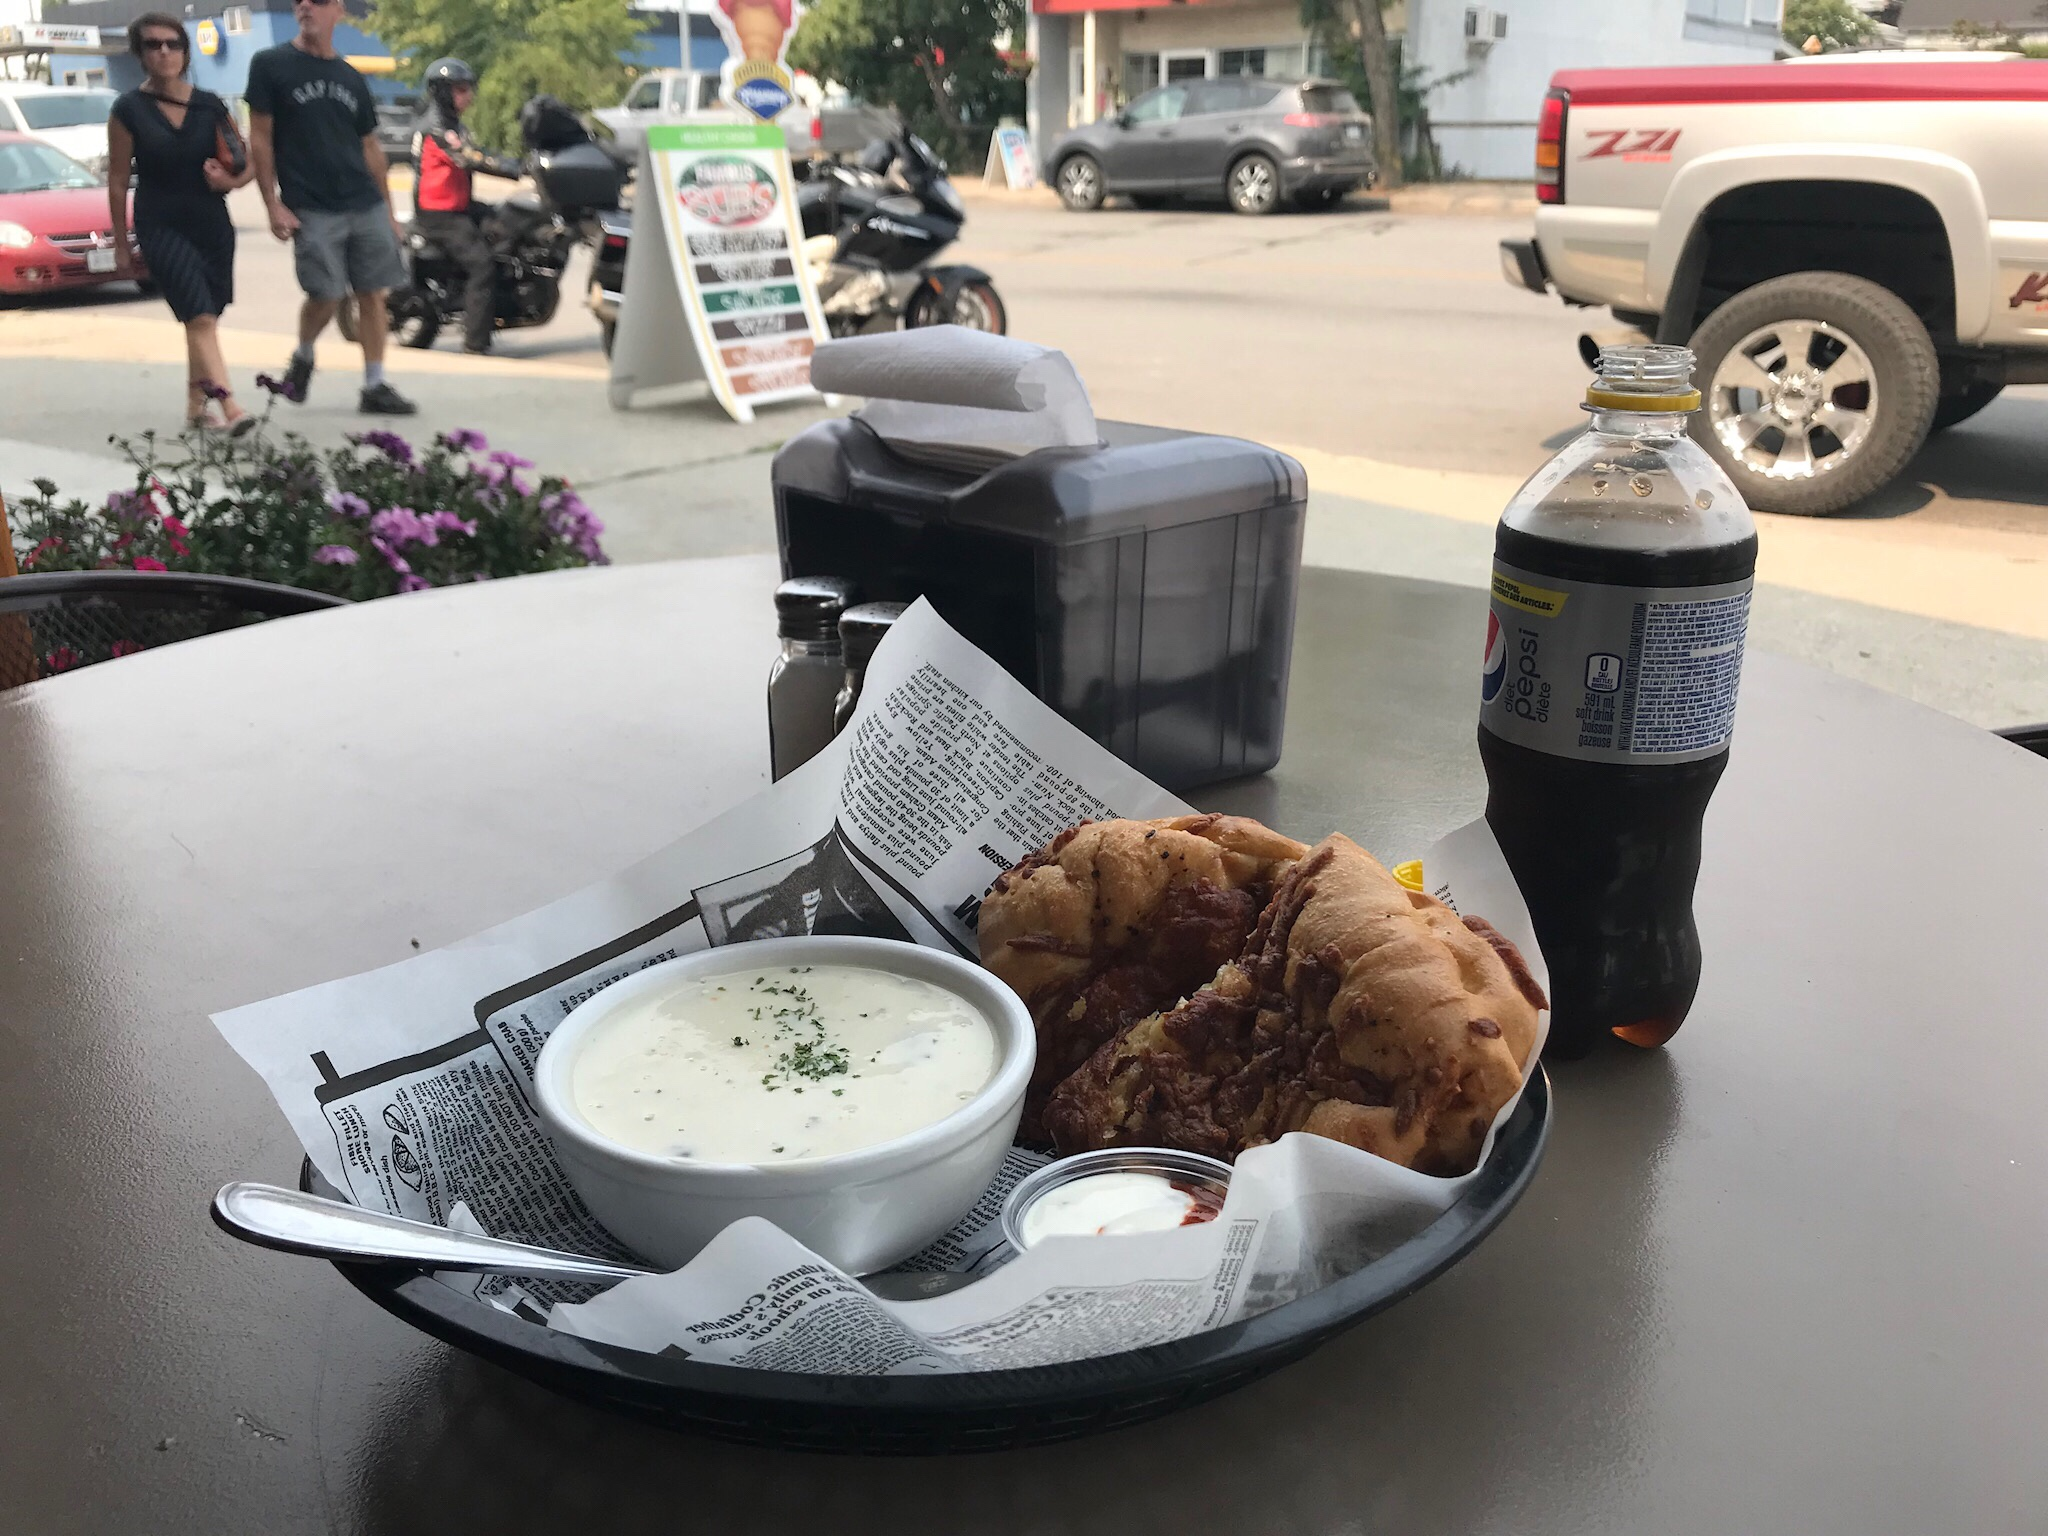 Cream of mushroom soup and a chicken/cheese Stromboli at Hoss 'n' Jess' Bistro in Nakusp, BC.